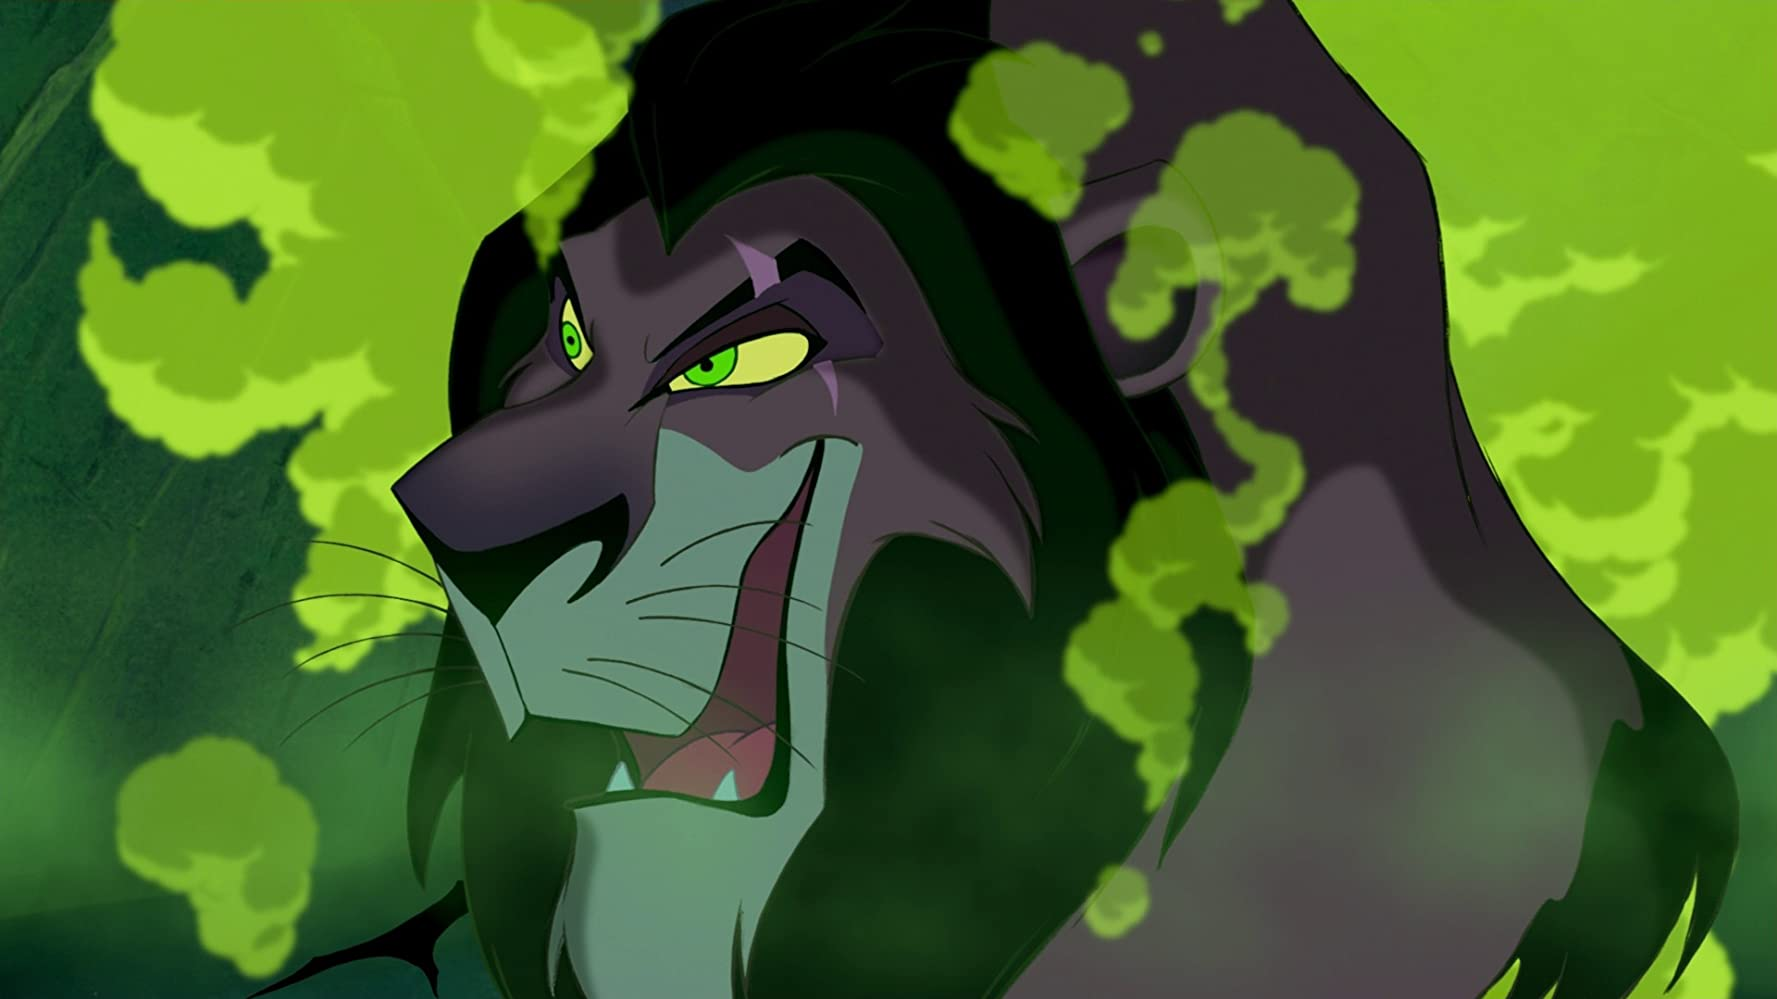 Jeremy Irons in The Lion King (1994)